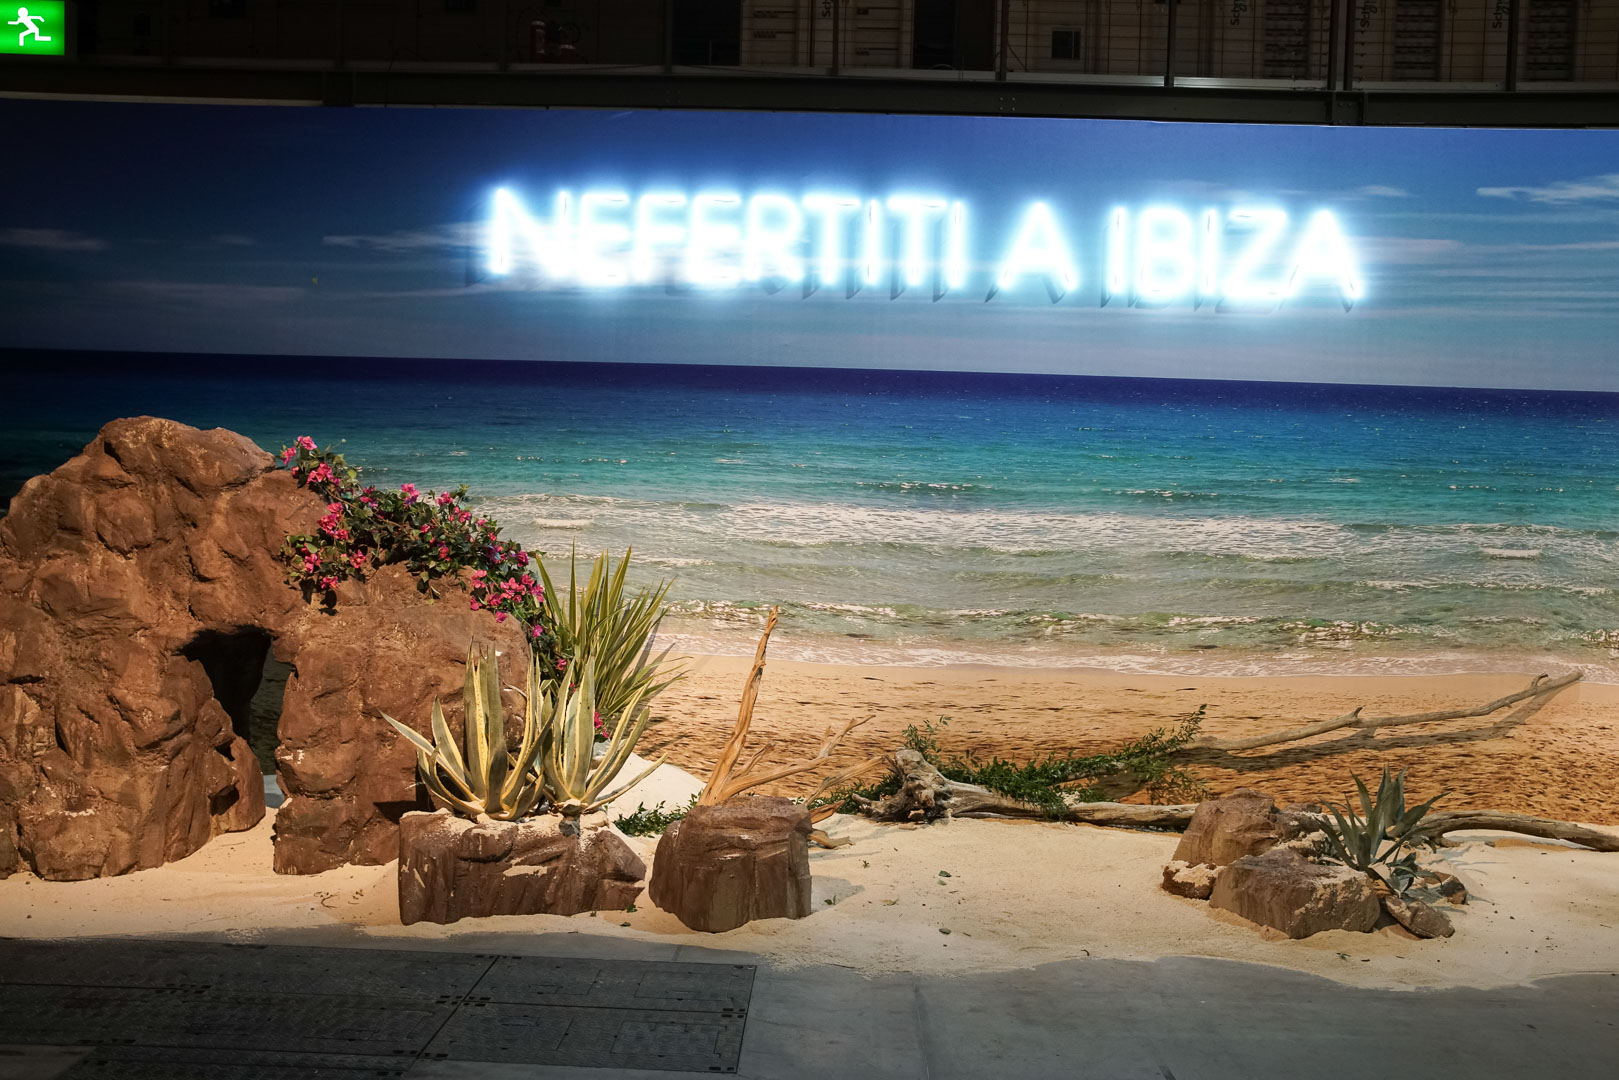 036_nefertiti_a_ibiza-low_ph_erdna